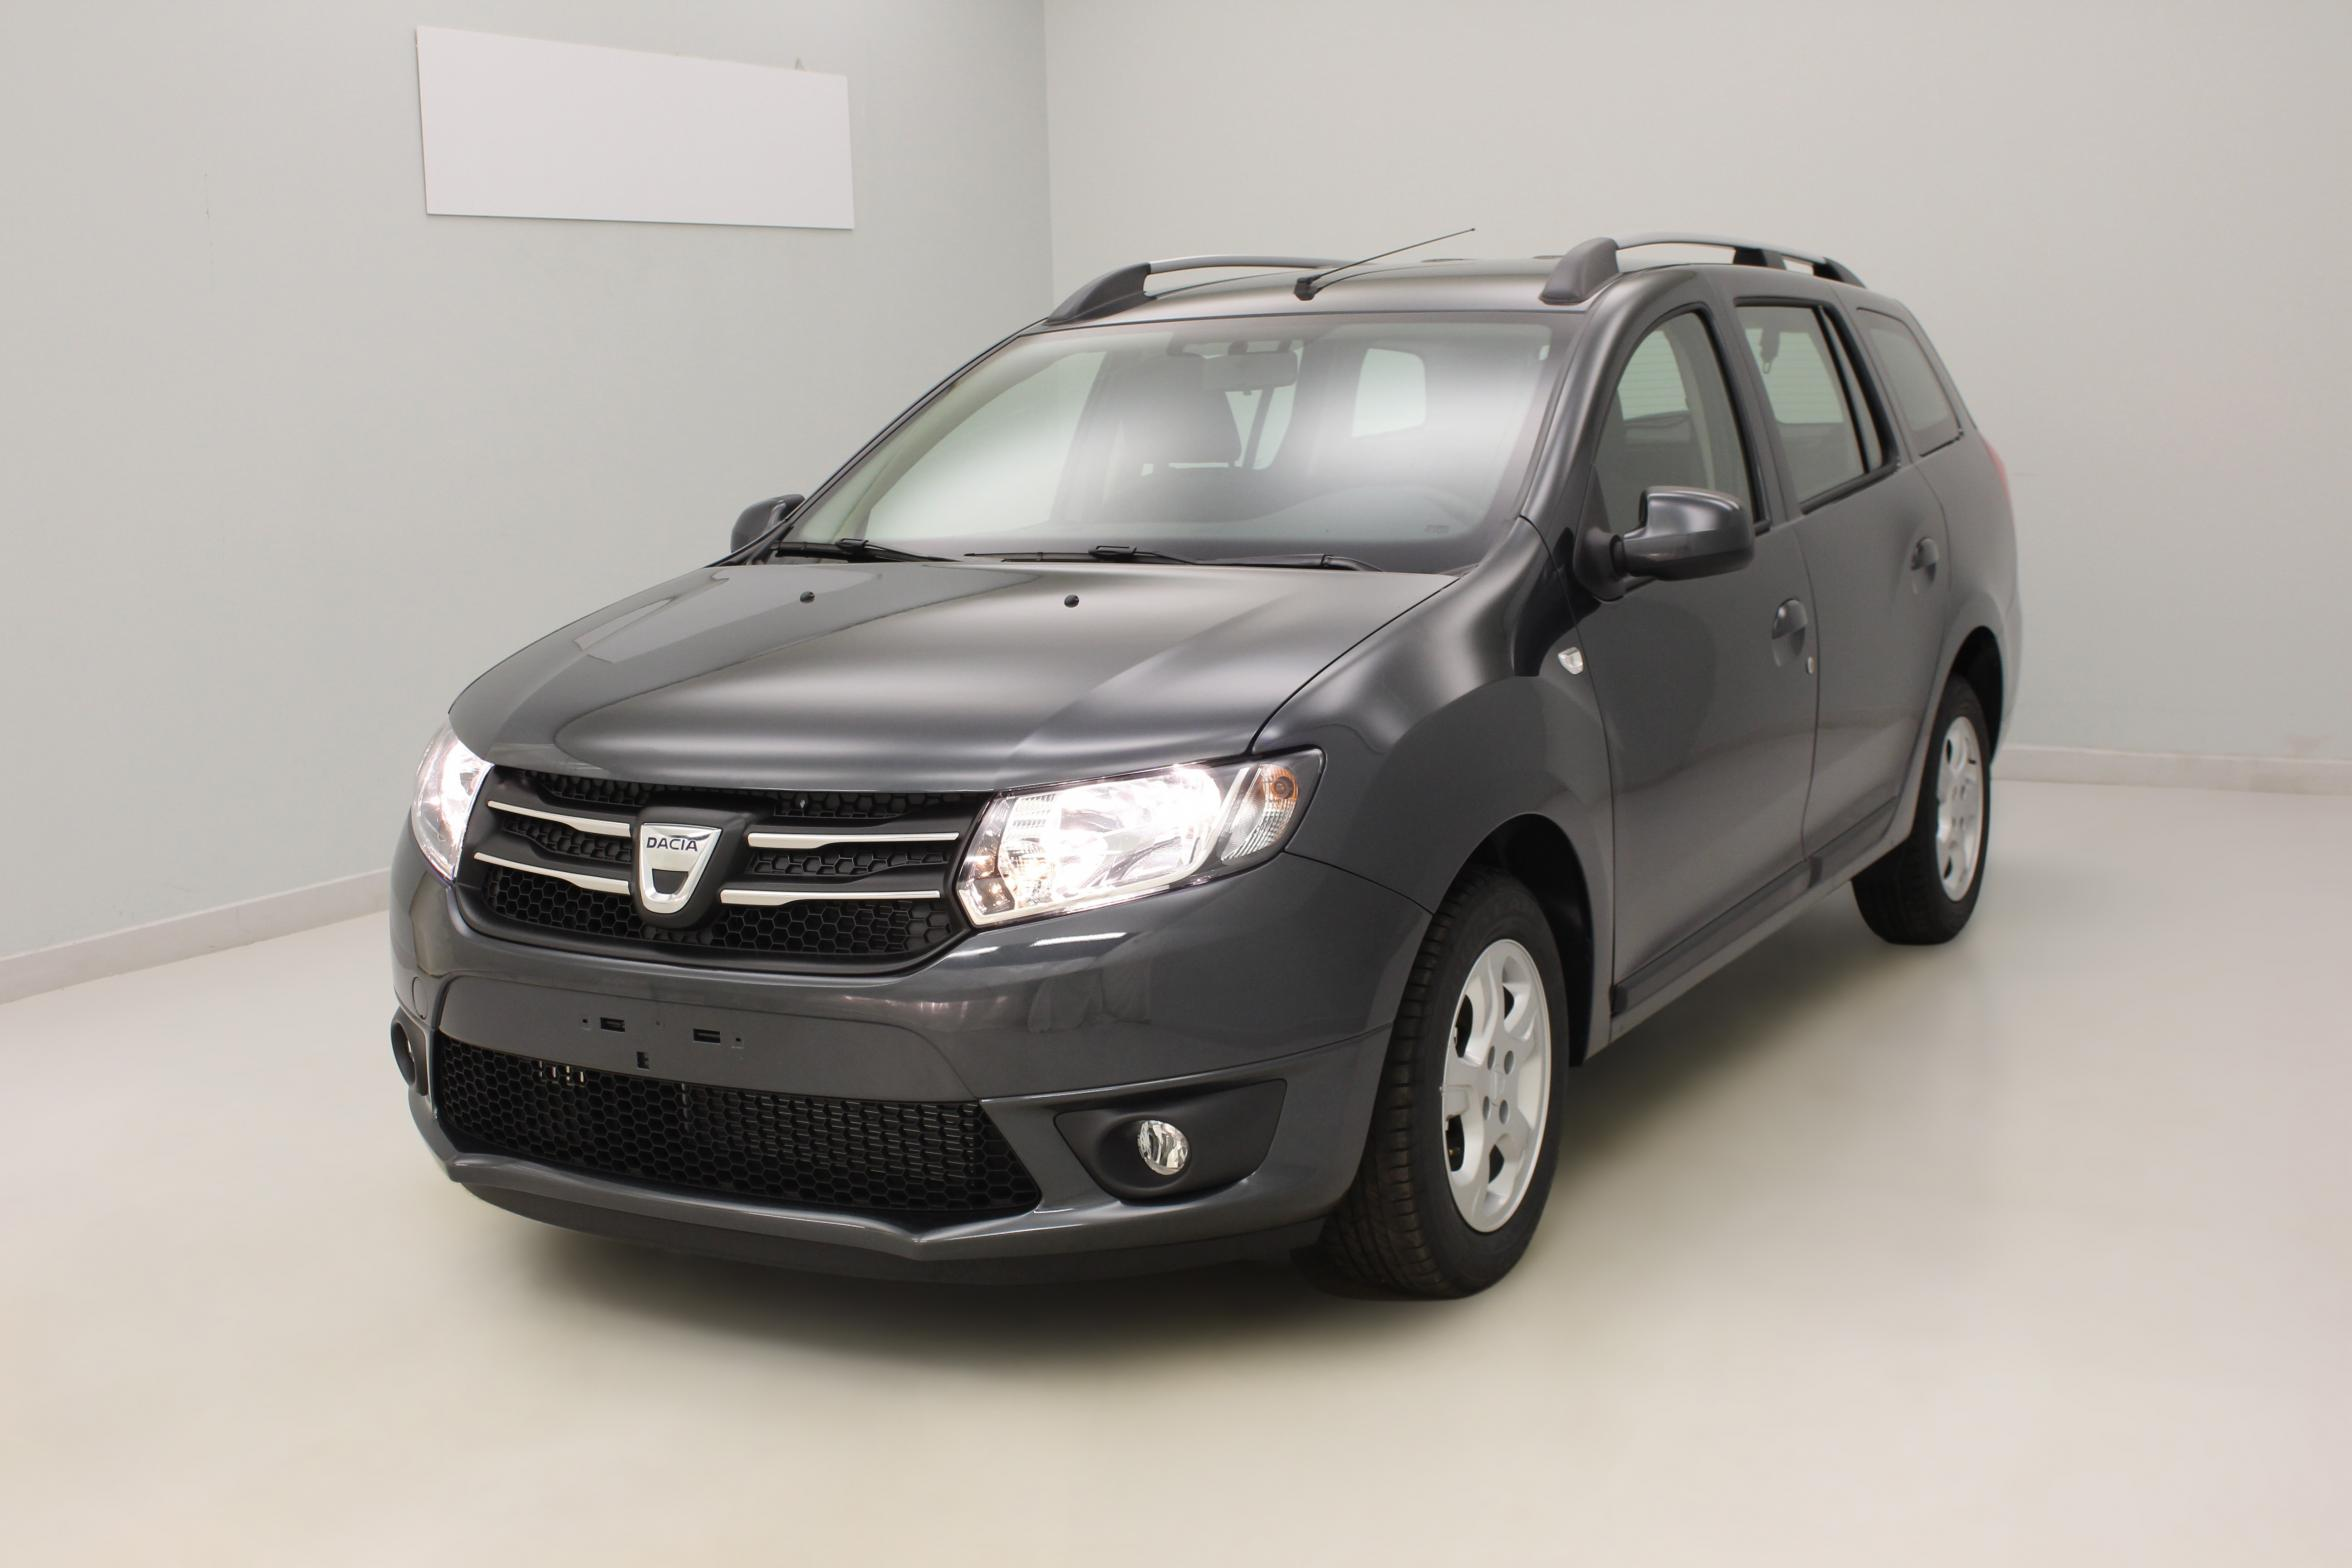 DACIA Logan MCV dCi 90 E6 Lauréate Gris Comète + Media Nav évolution avec options